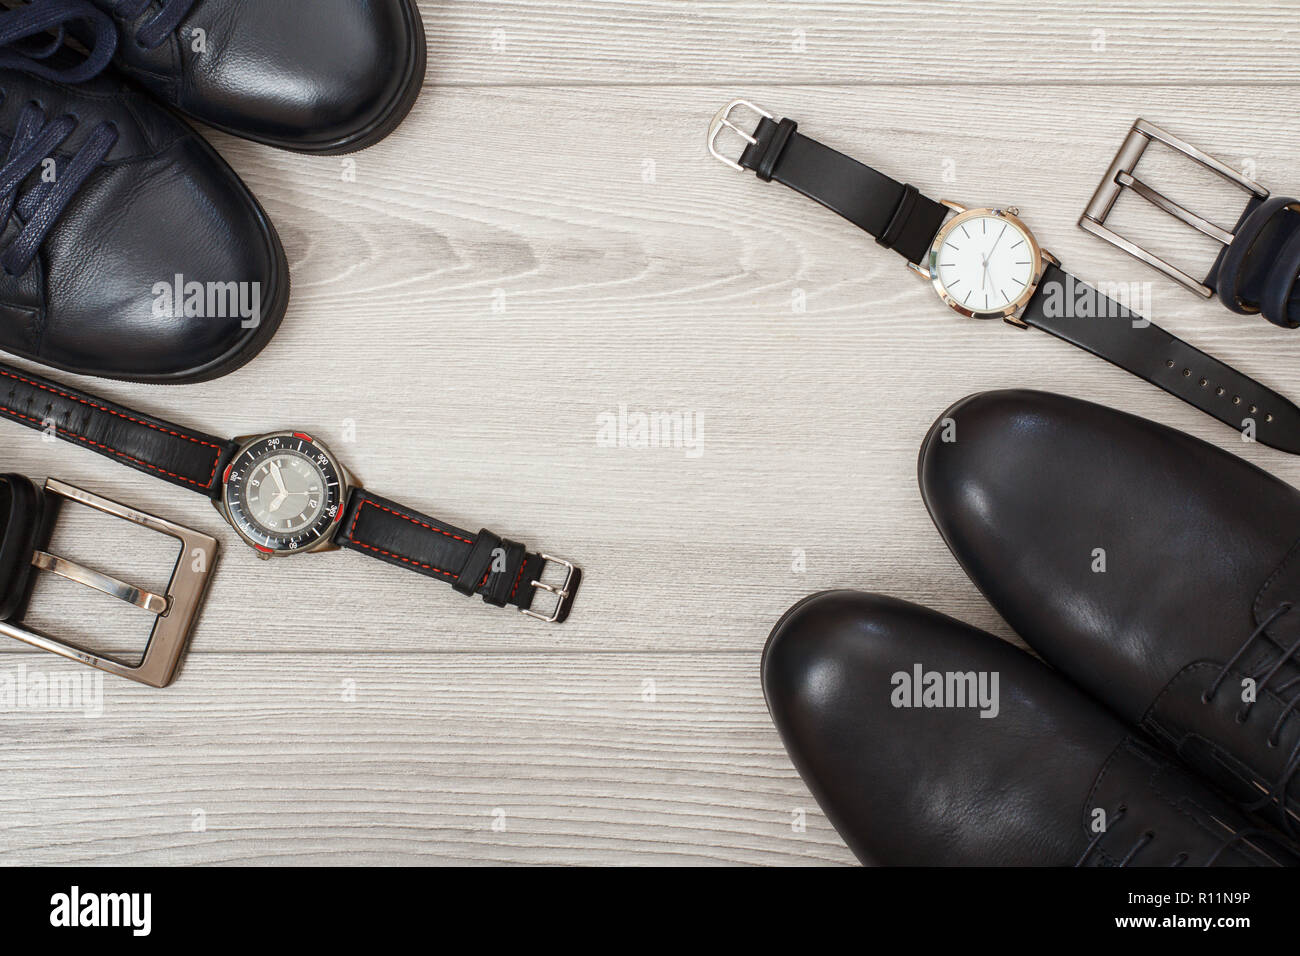 Two pairs of black leather men's shoes, two belts for men and two wristwatches on gray wooden background. Men's accessories. Top view - Stock Image